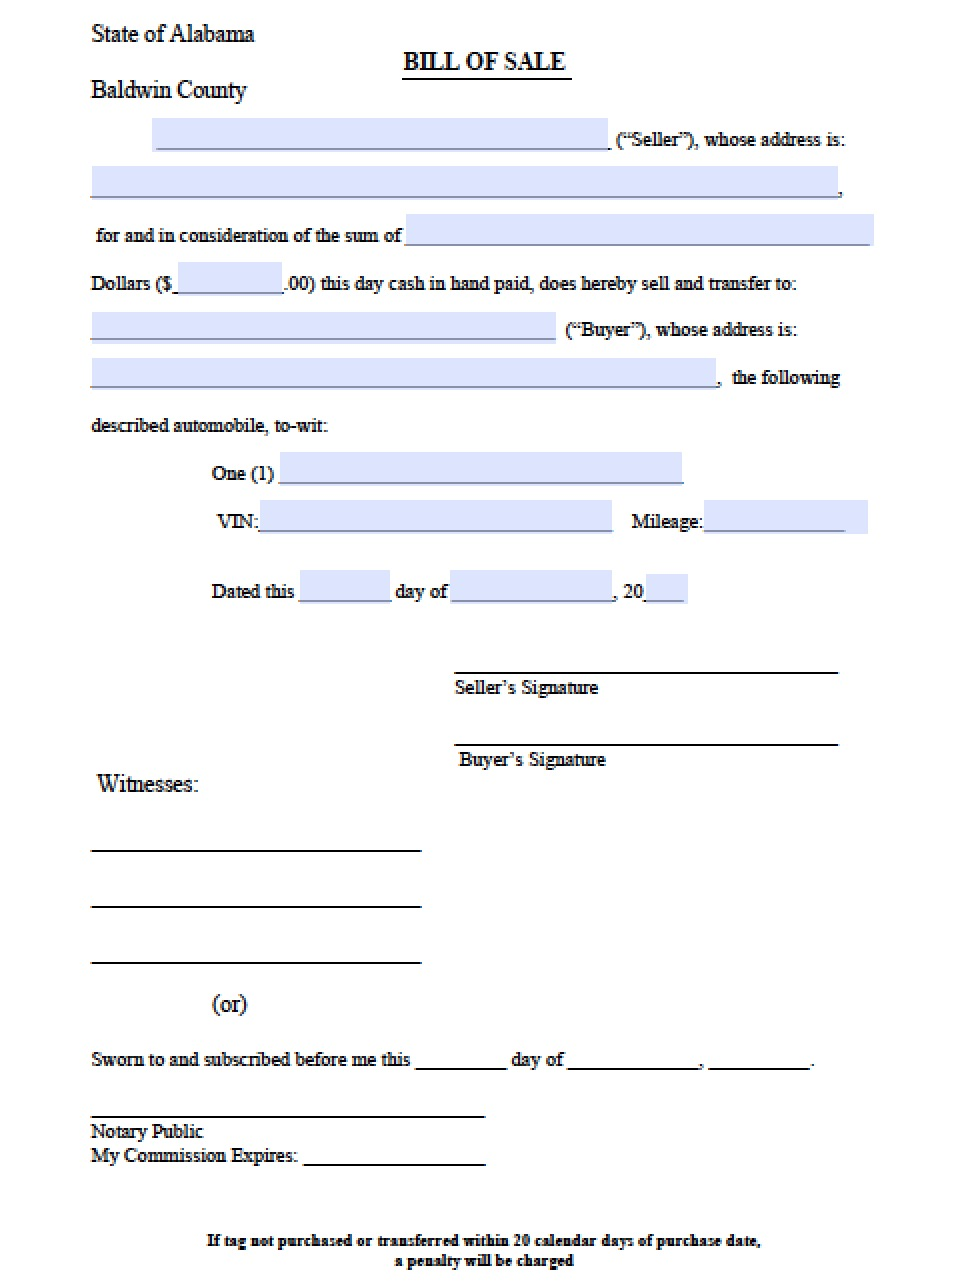 free baldwin county alabama bill of sale form pdf